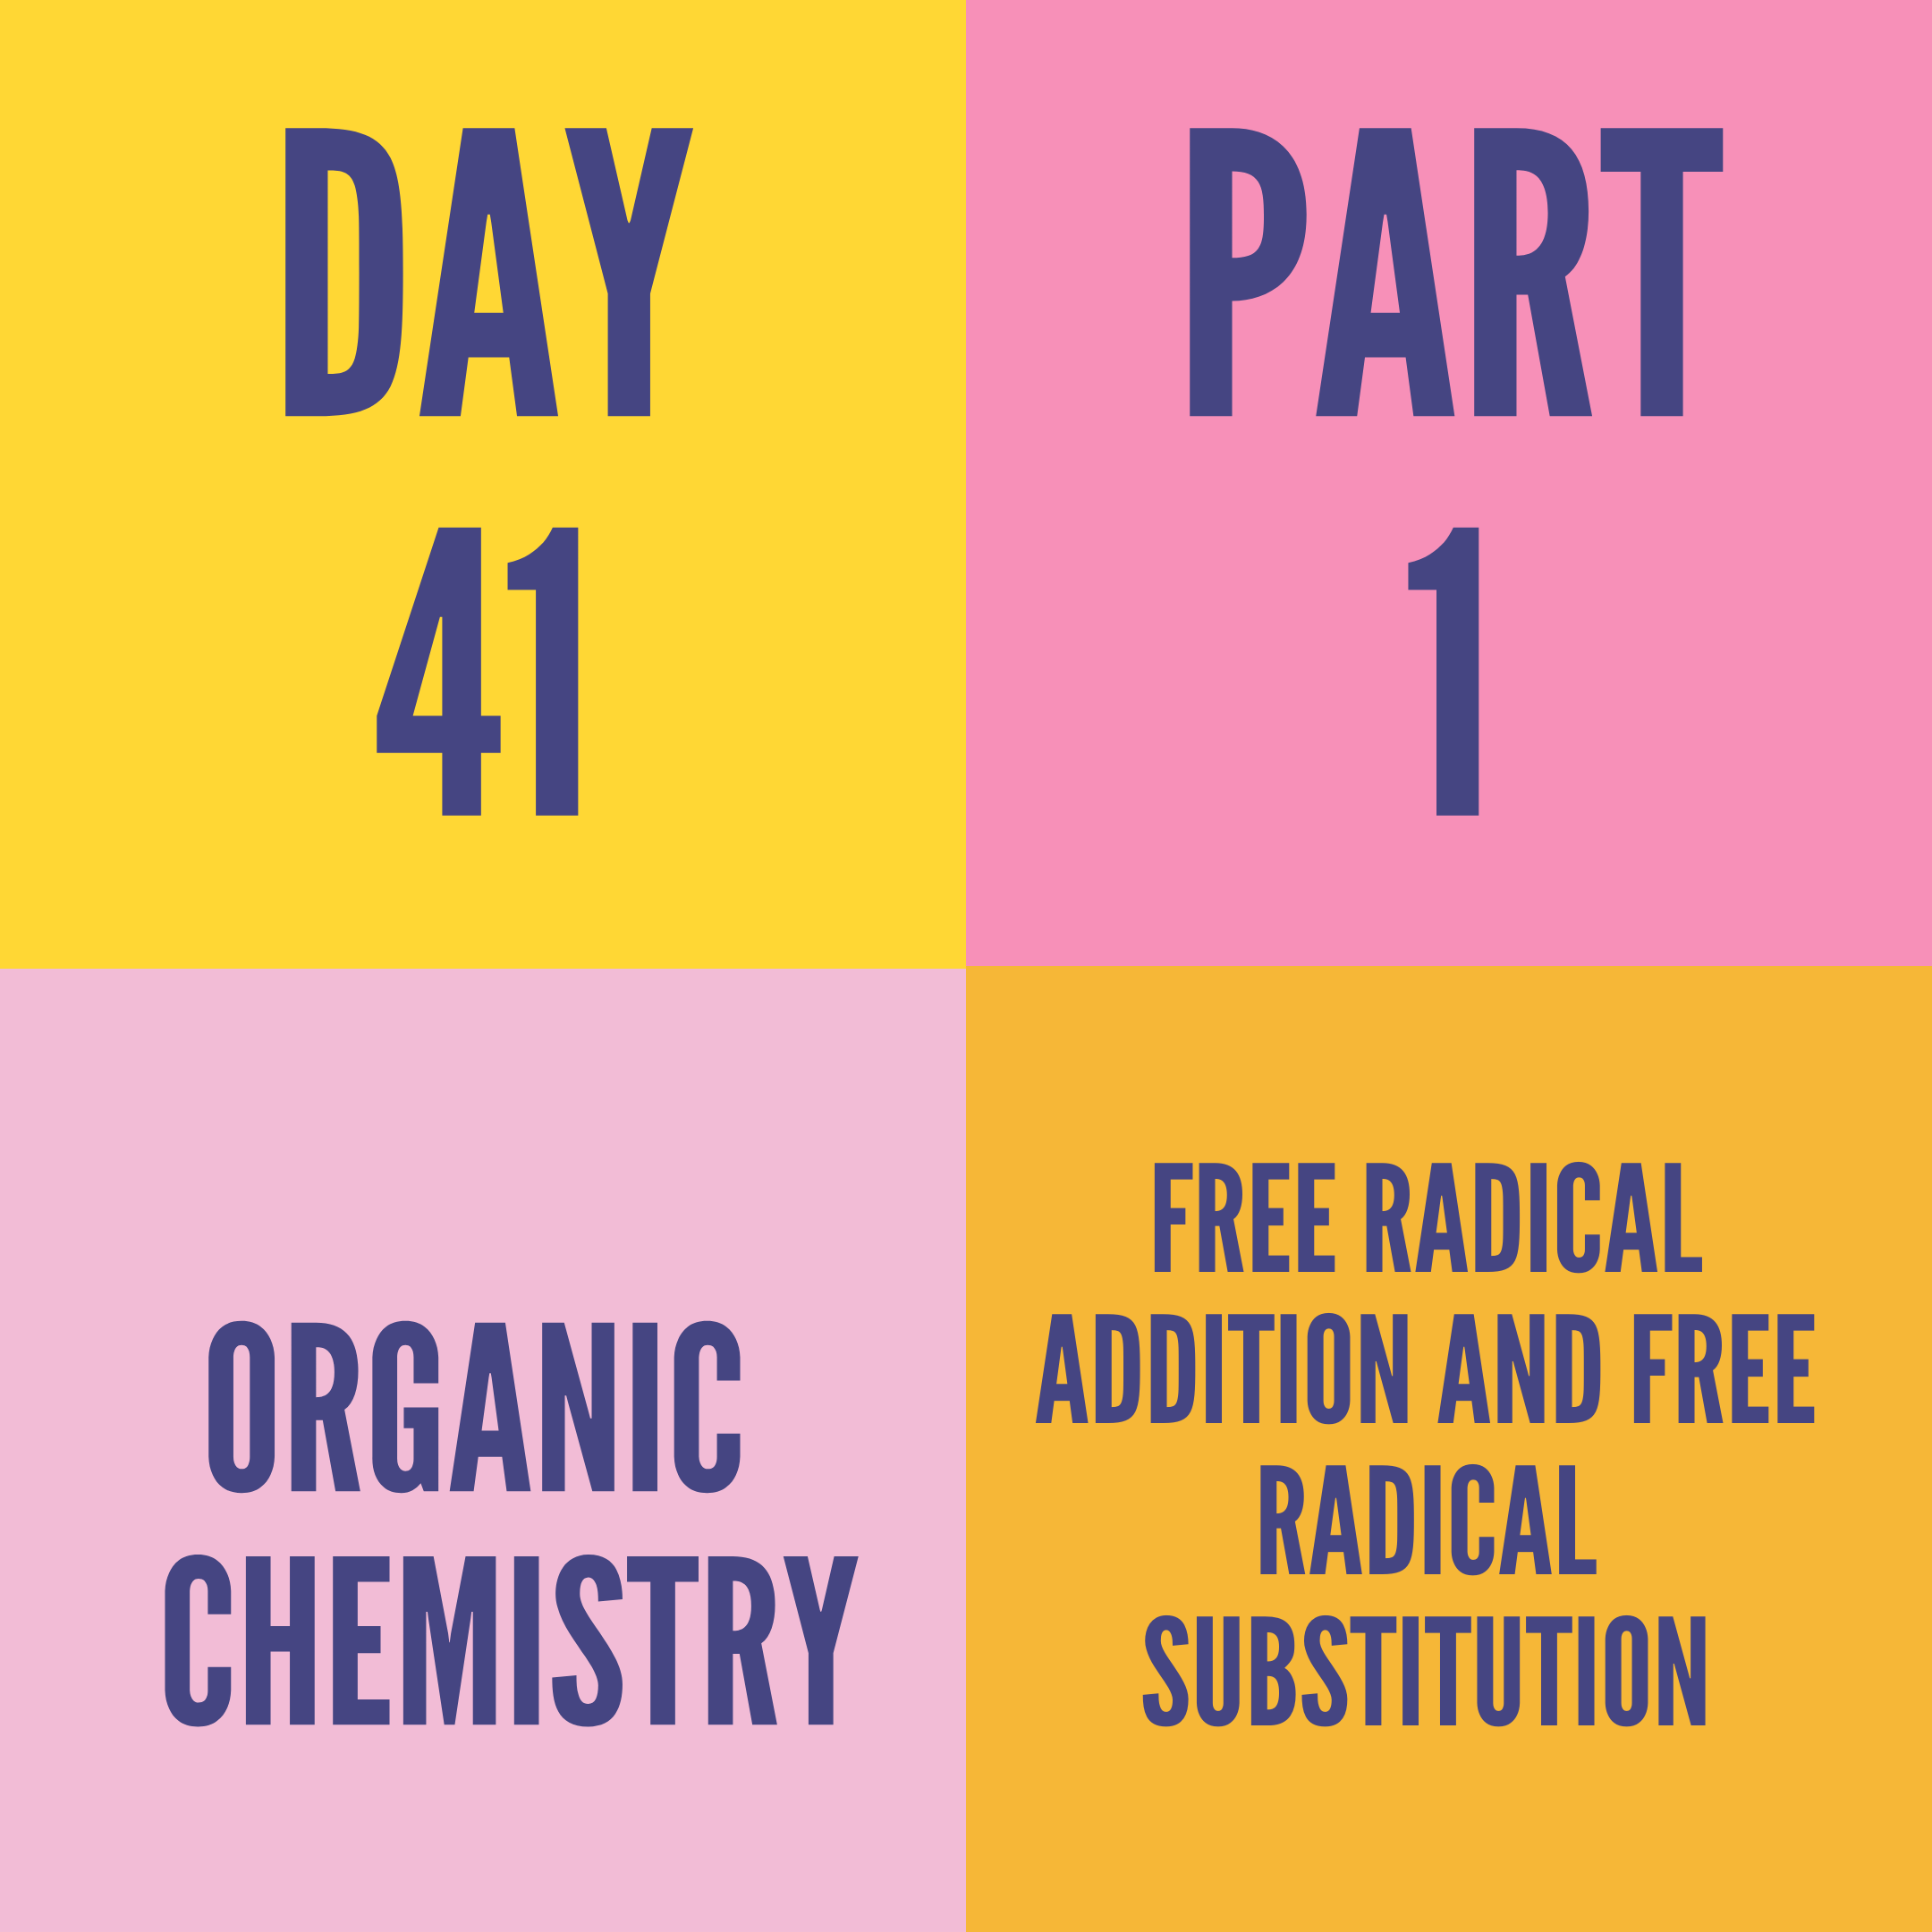 DAY-41 PART-1  FREE RADICAL ADDITION AND FREE RADICAL SUBSTITUTION